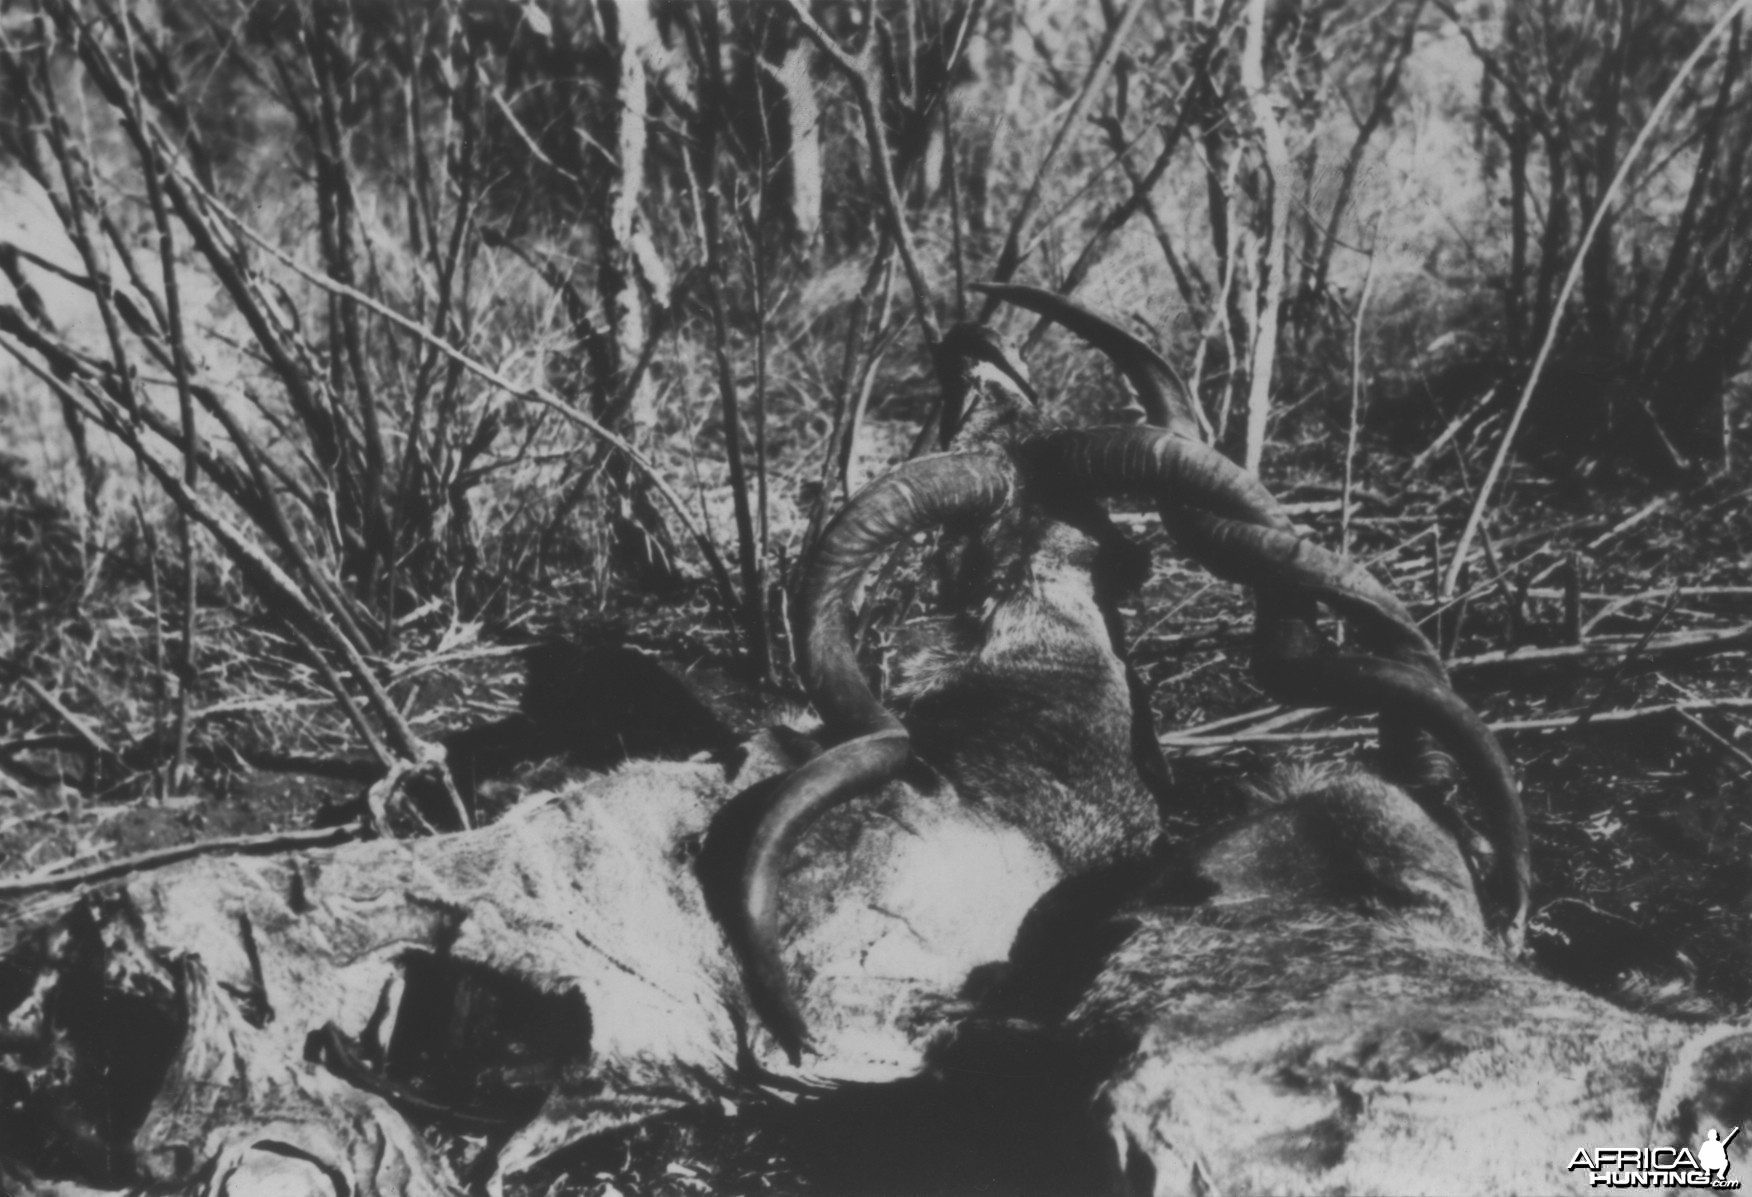 Remains of two Kudus that died from becoming interlocked